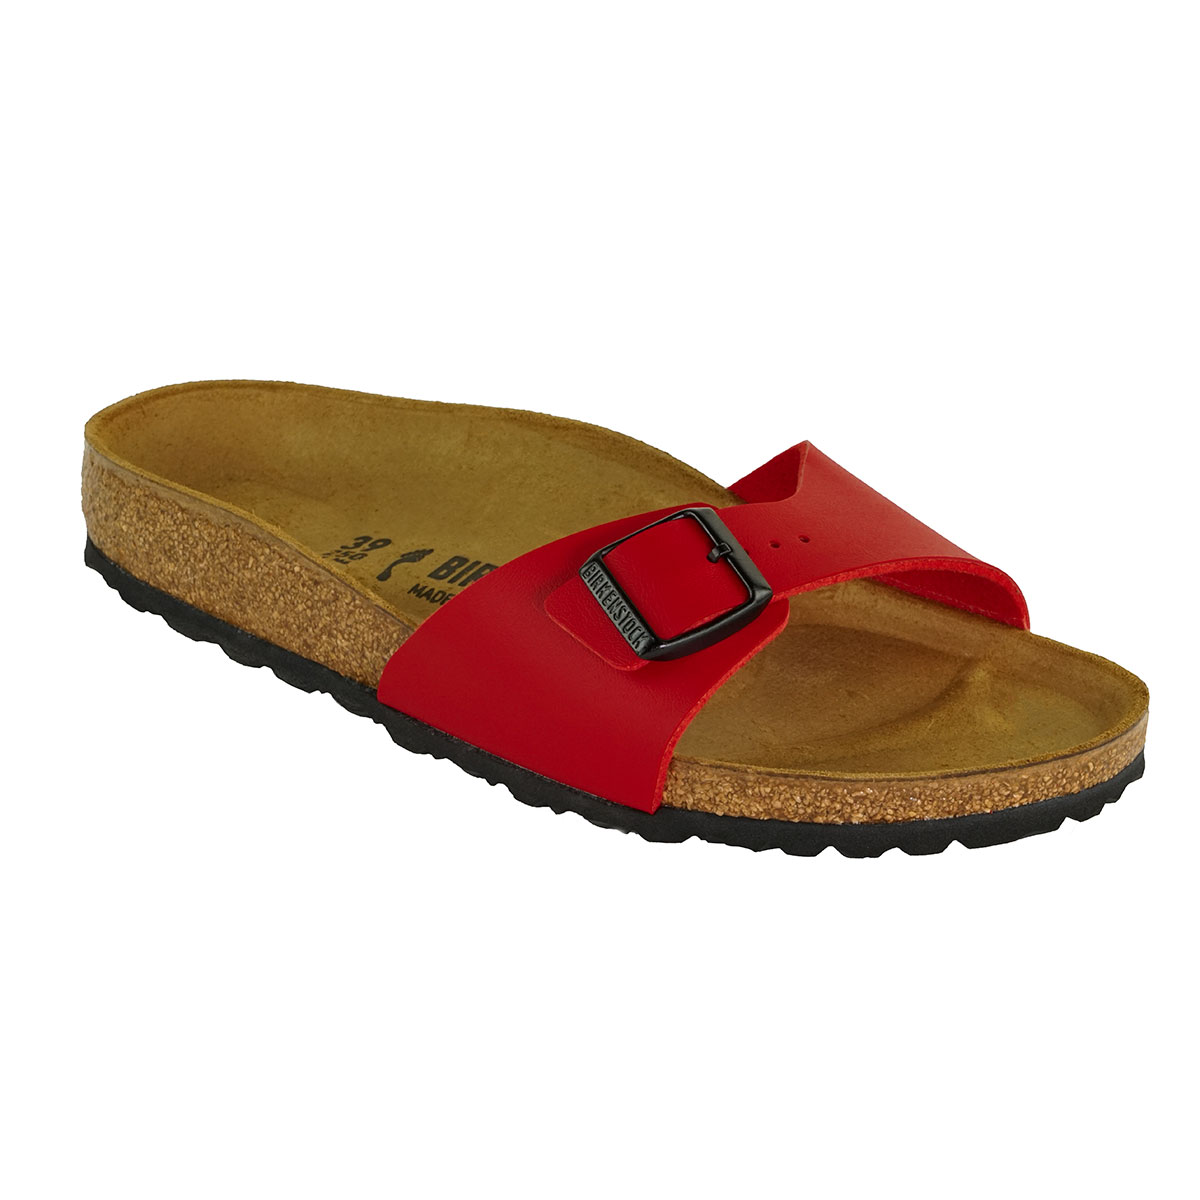 Birkenstock Men's or Women's Madrid Birko-Flor Sandals